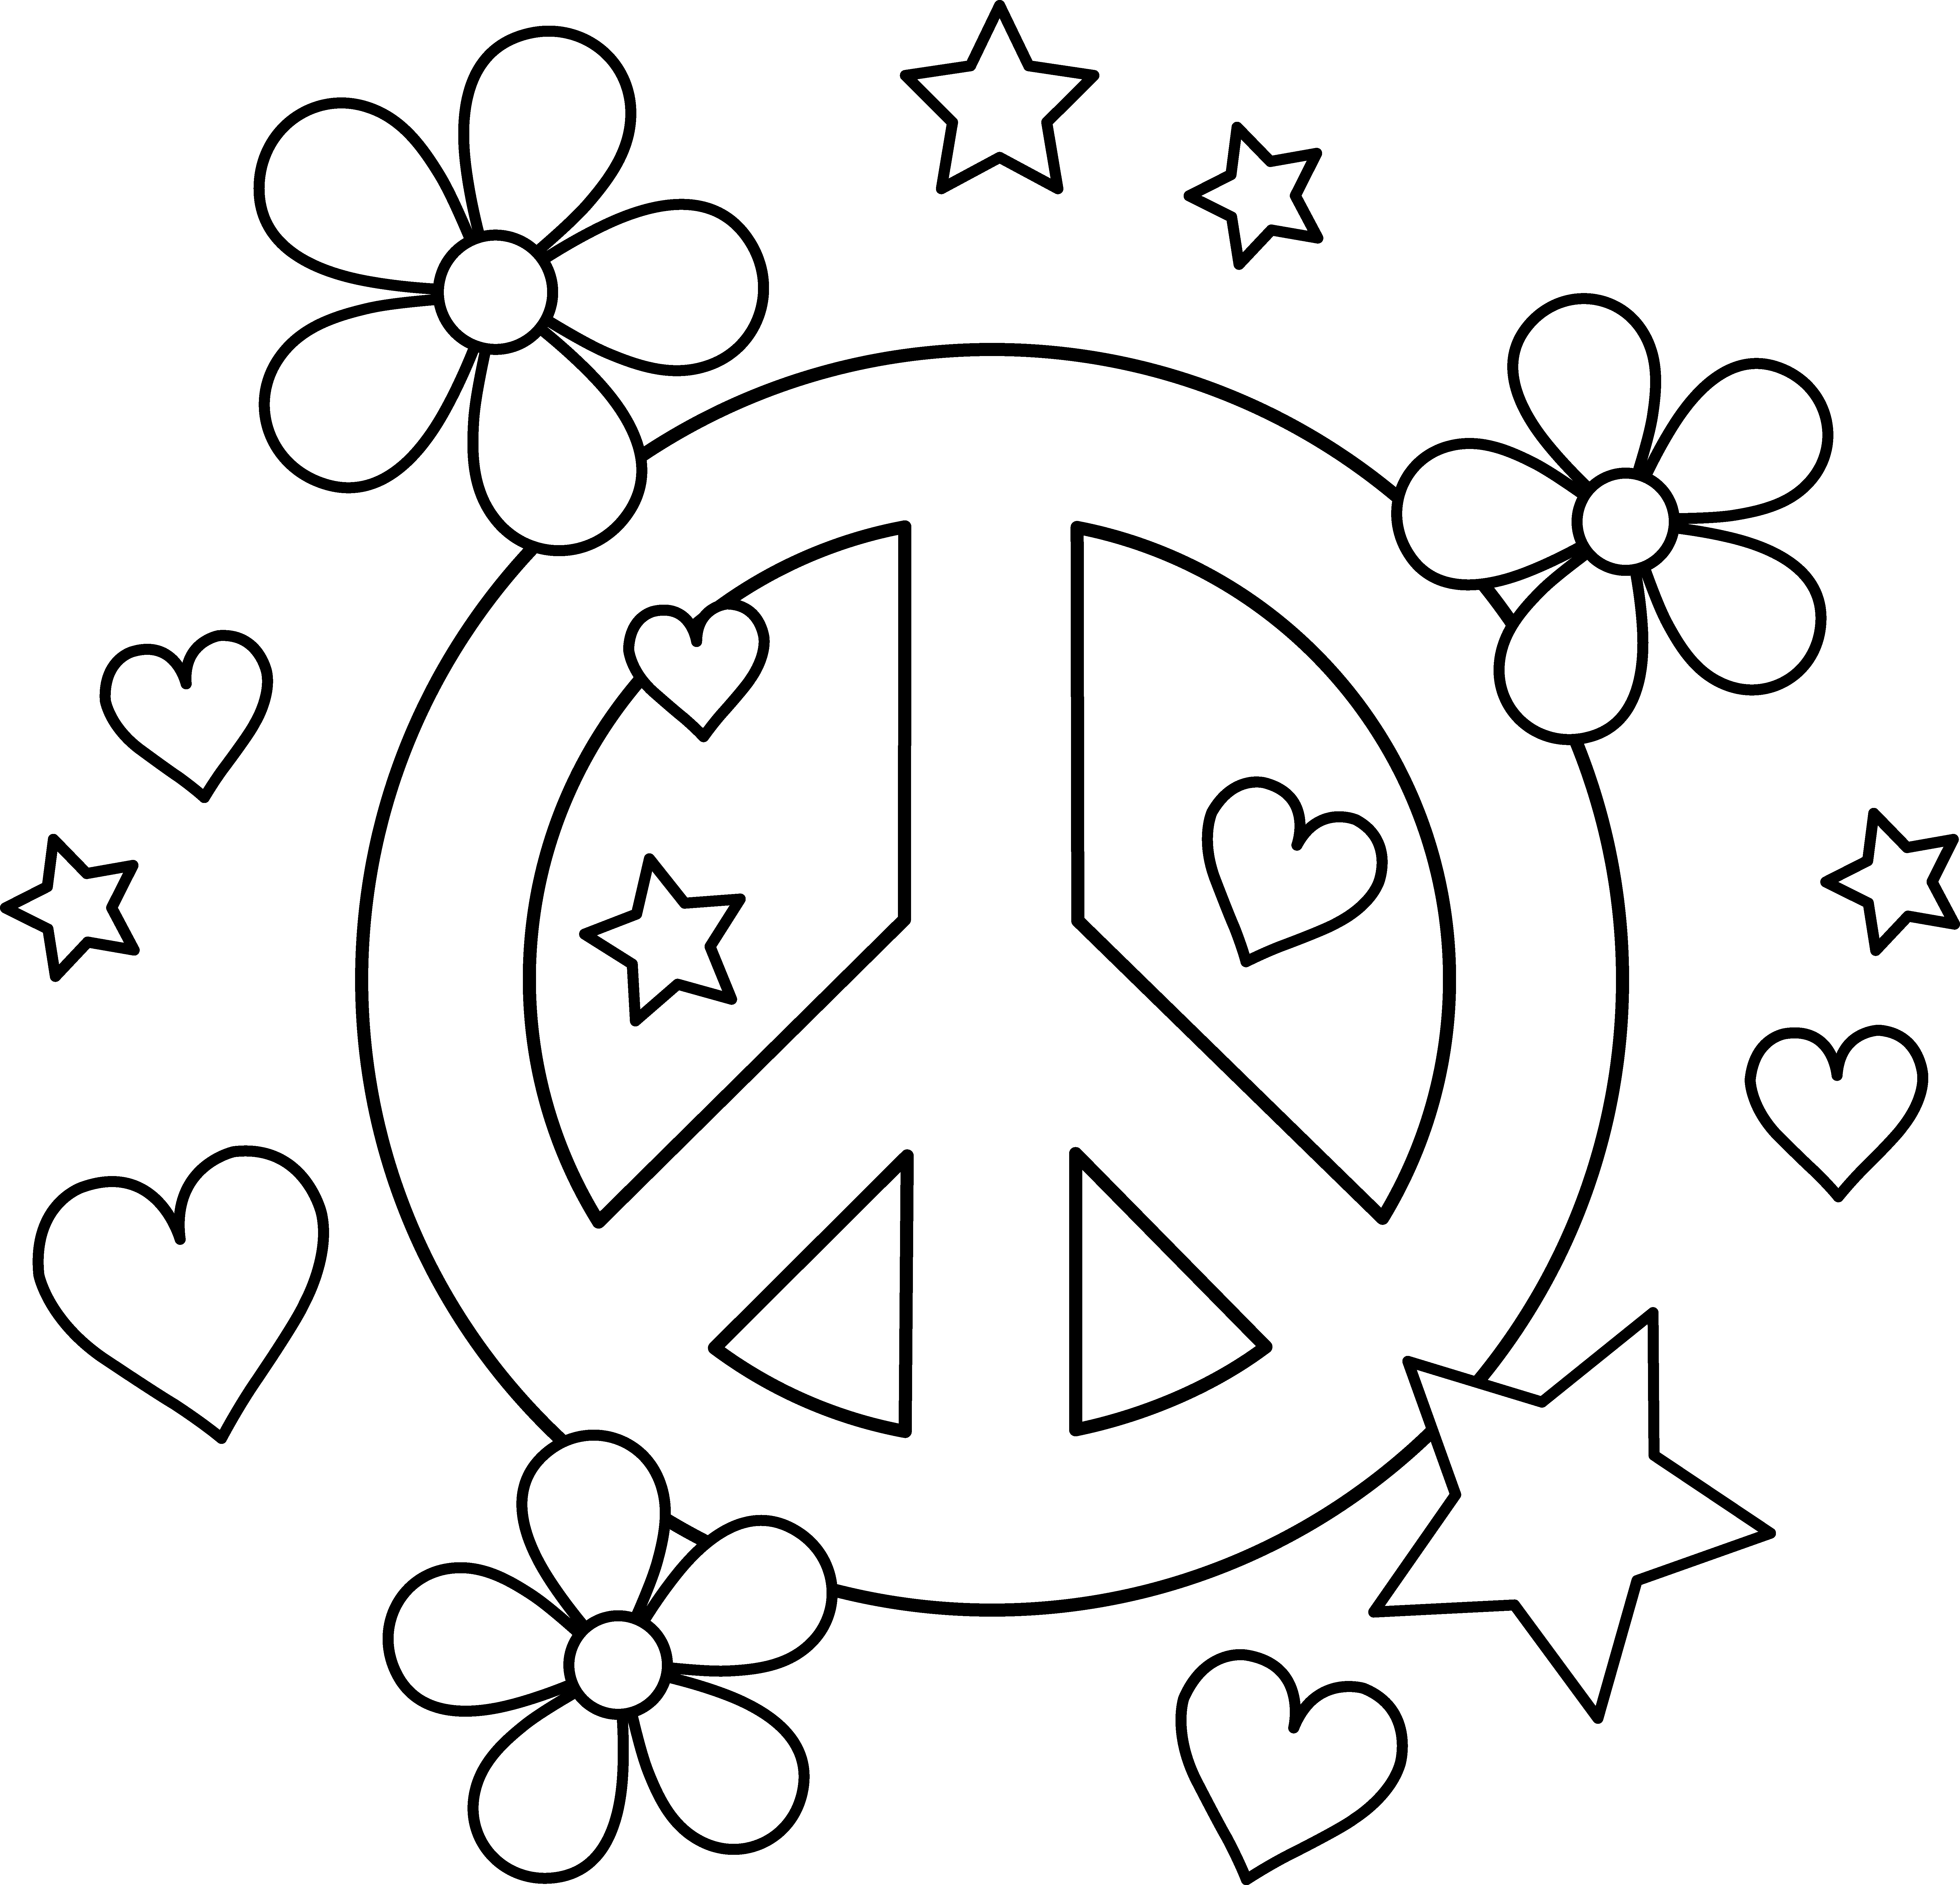 peace coloring pages peace coloring pages to download and print for free peace coloring pages